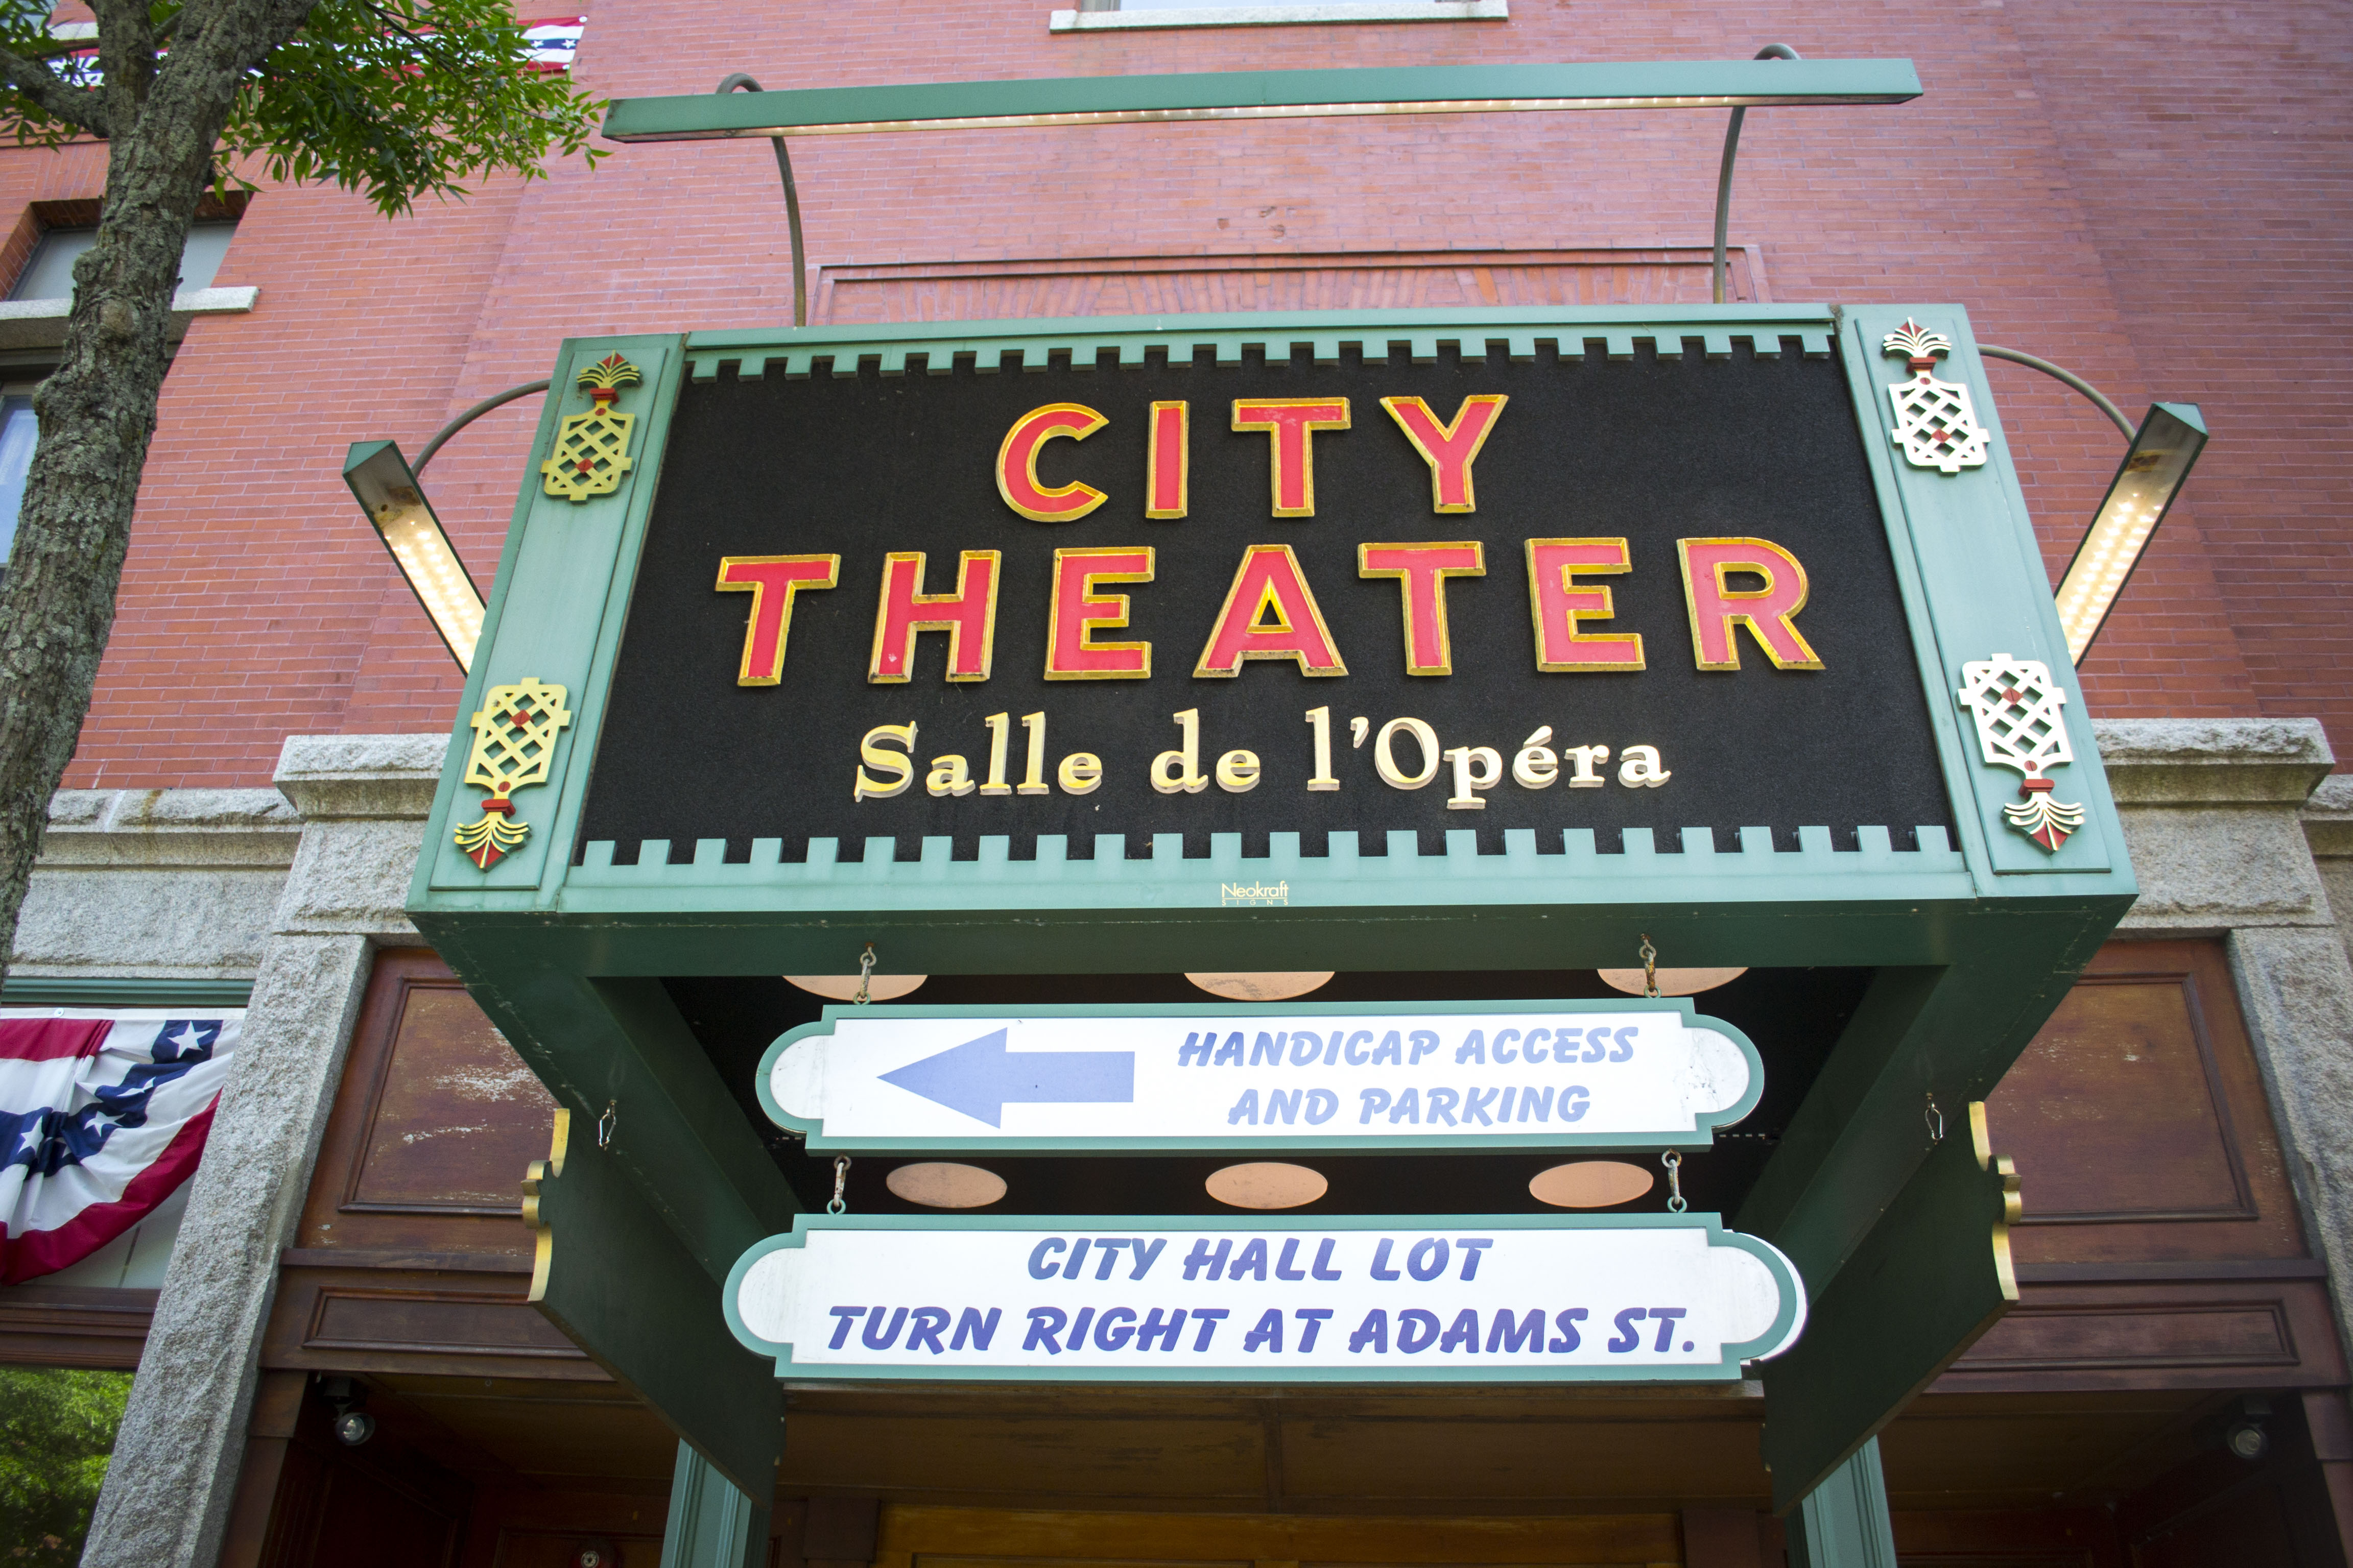 Biddeford's City Theater, pictured in July. ALAN BENNETT/Journal Tribune